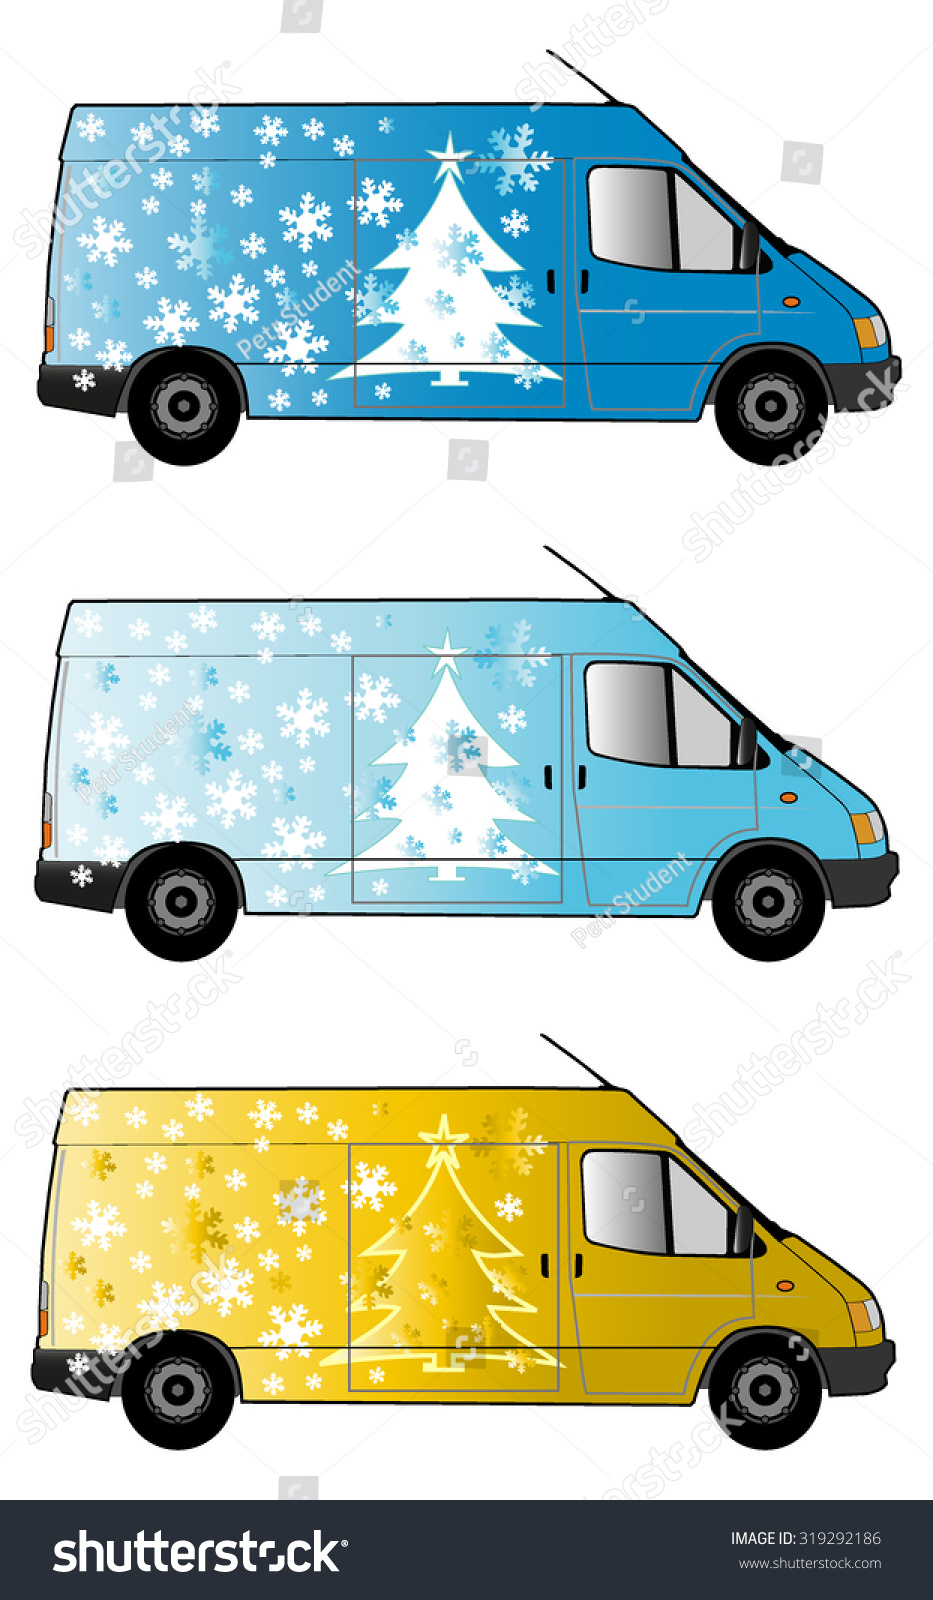 Christmas Gifts Delivery Car Stock Vector (Royalty Free) 319292186 ...